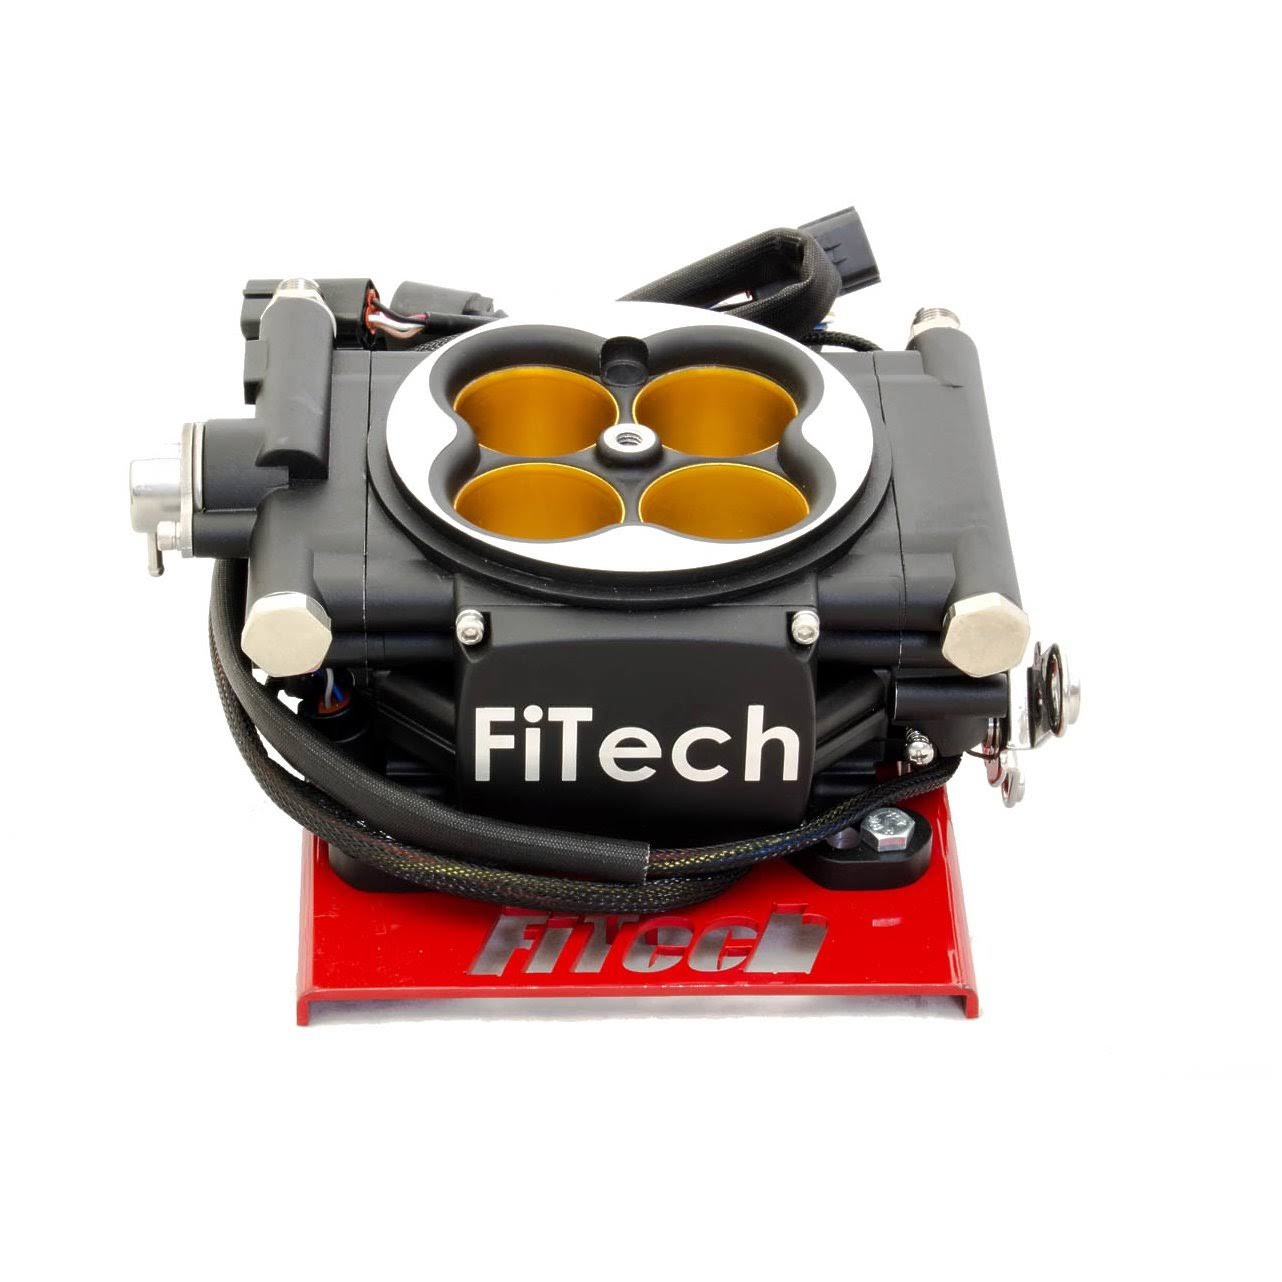 FiTech Fuel Injection 30012 Go EFI 8 1200HP Power